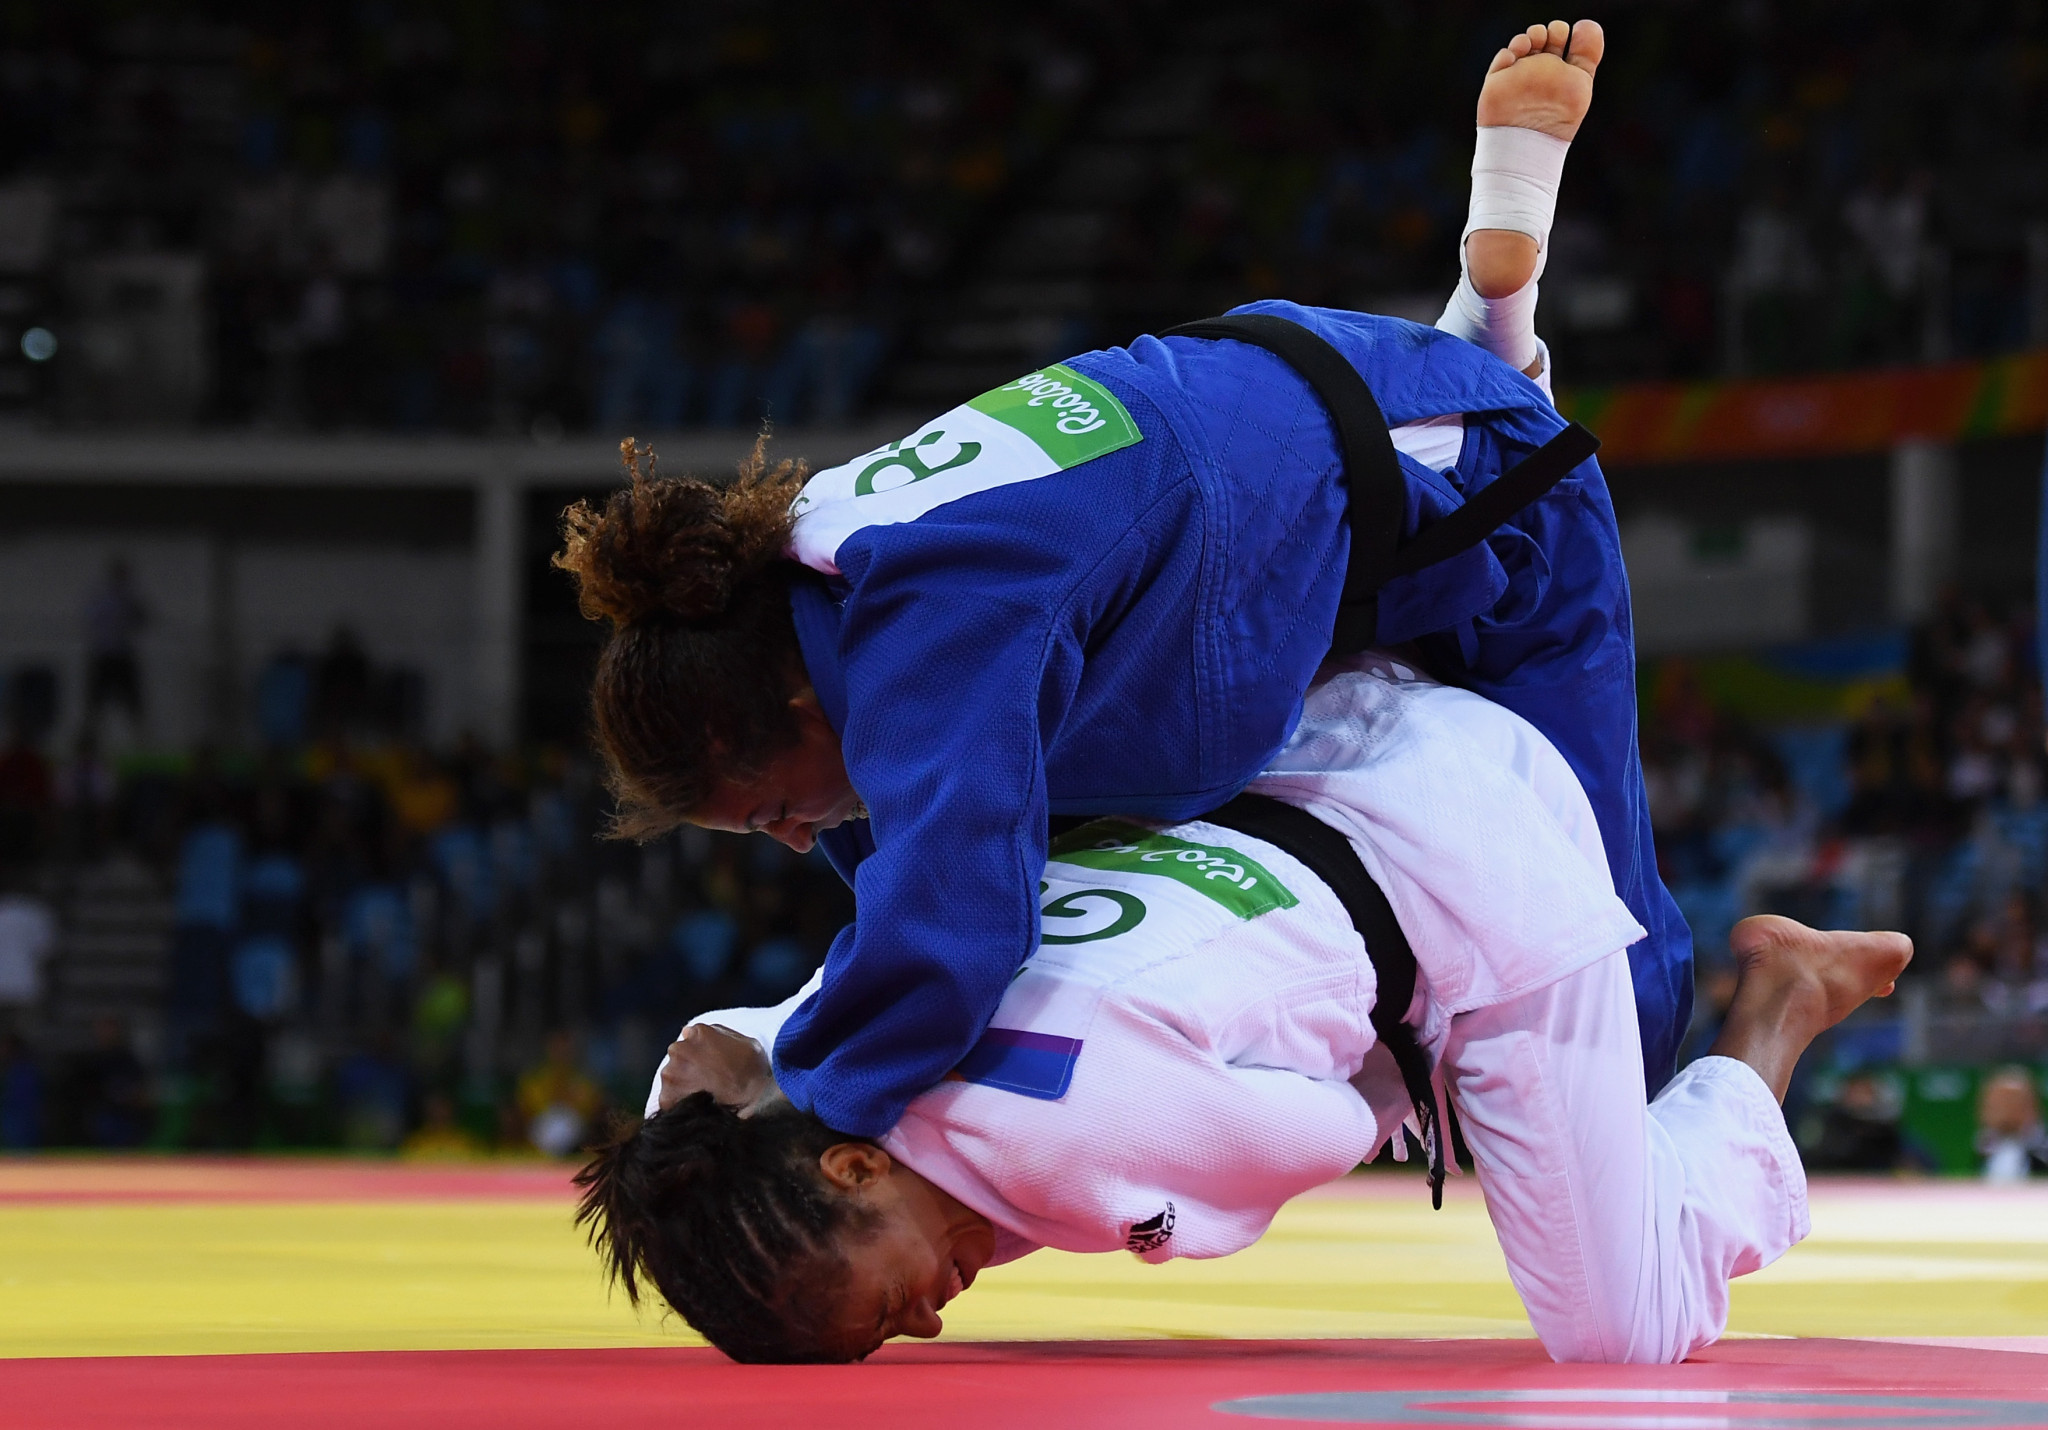 Rafaela Silva, in blue, can return to action following a two-year doping ban ©Getty Images